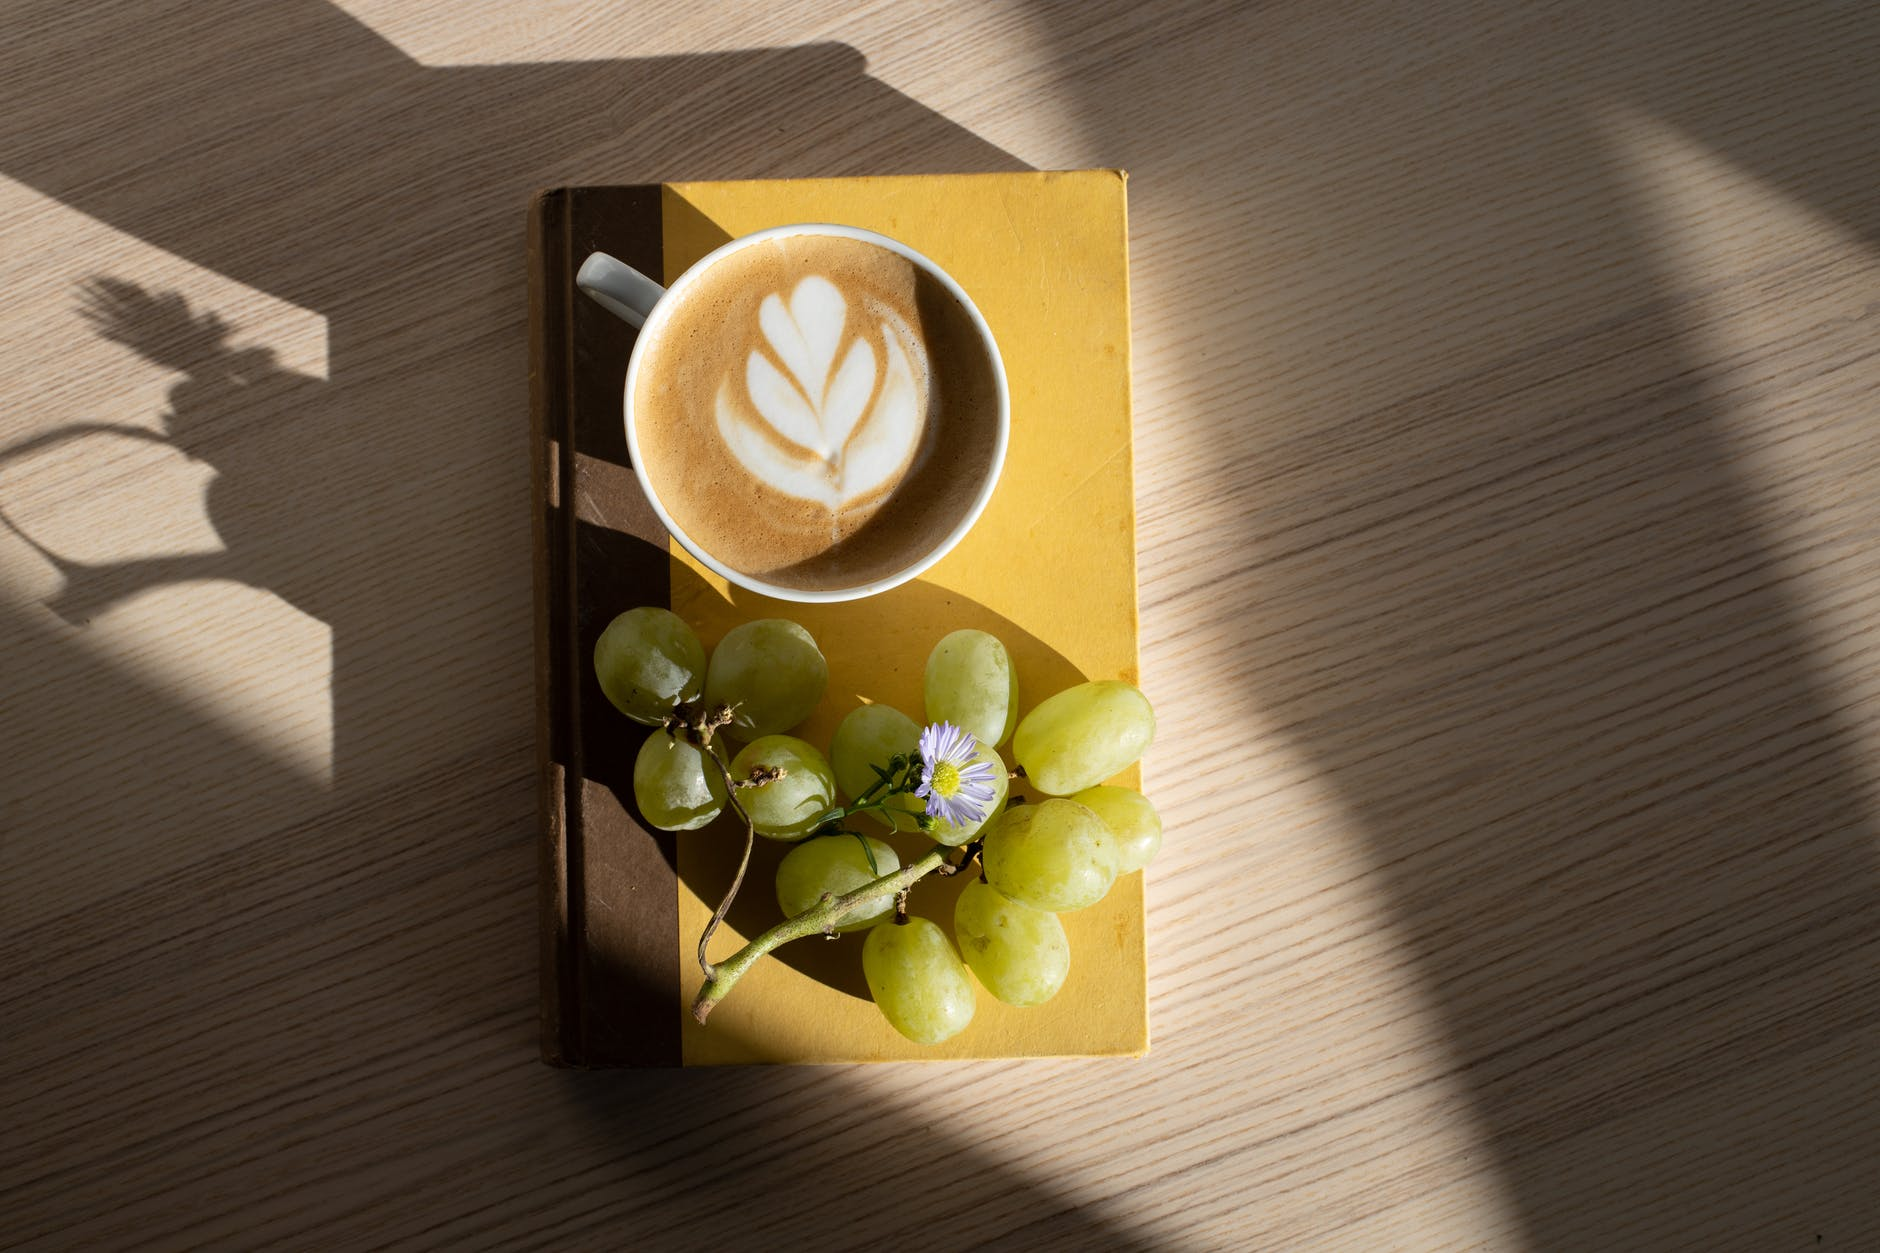 cup of cappuccino and bunch of grapes arranged on book